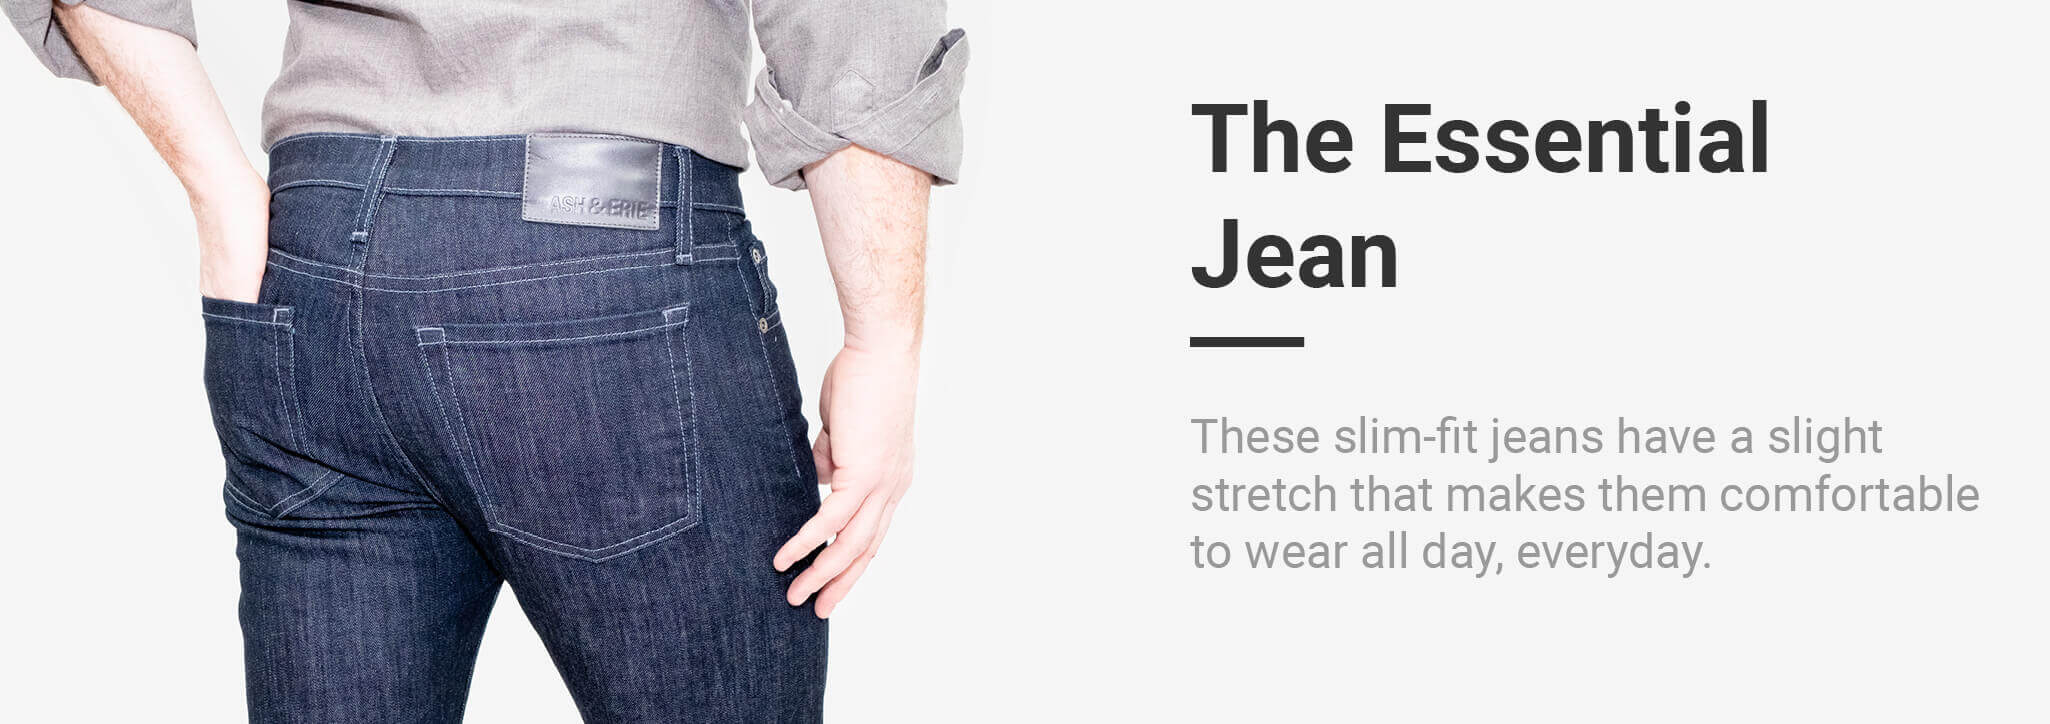 These slim-fit jeans have a slight stretch that makes them comfortable to wear all day, everyday.